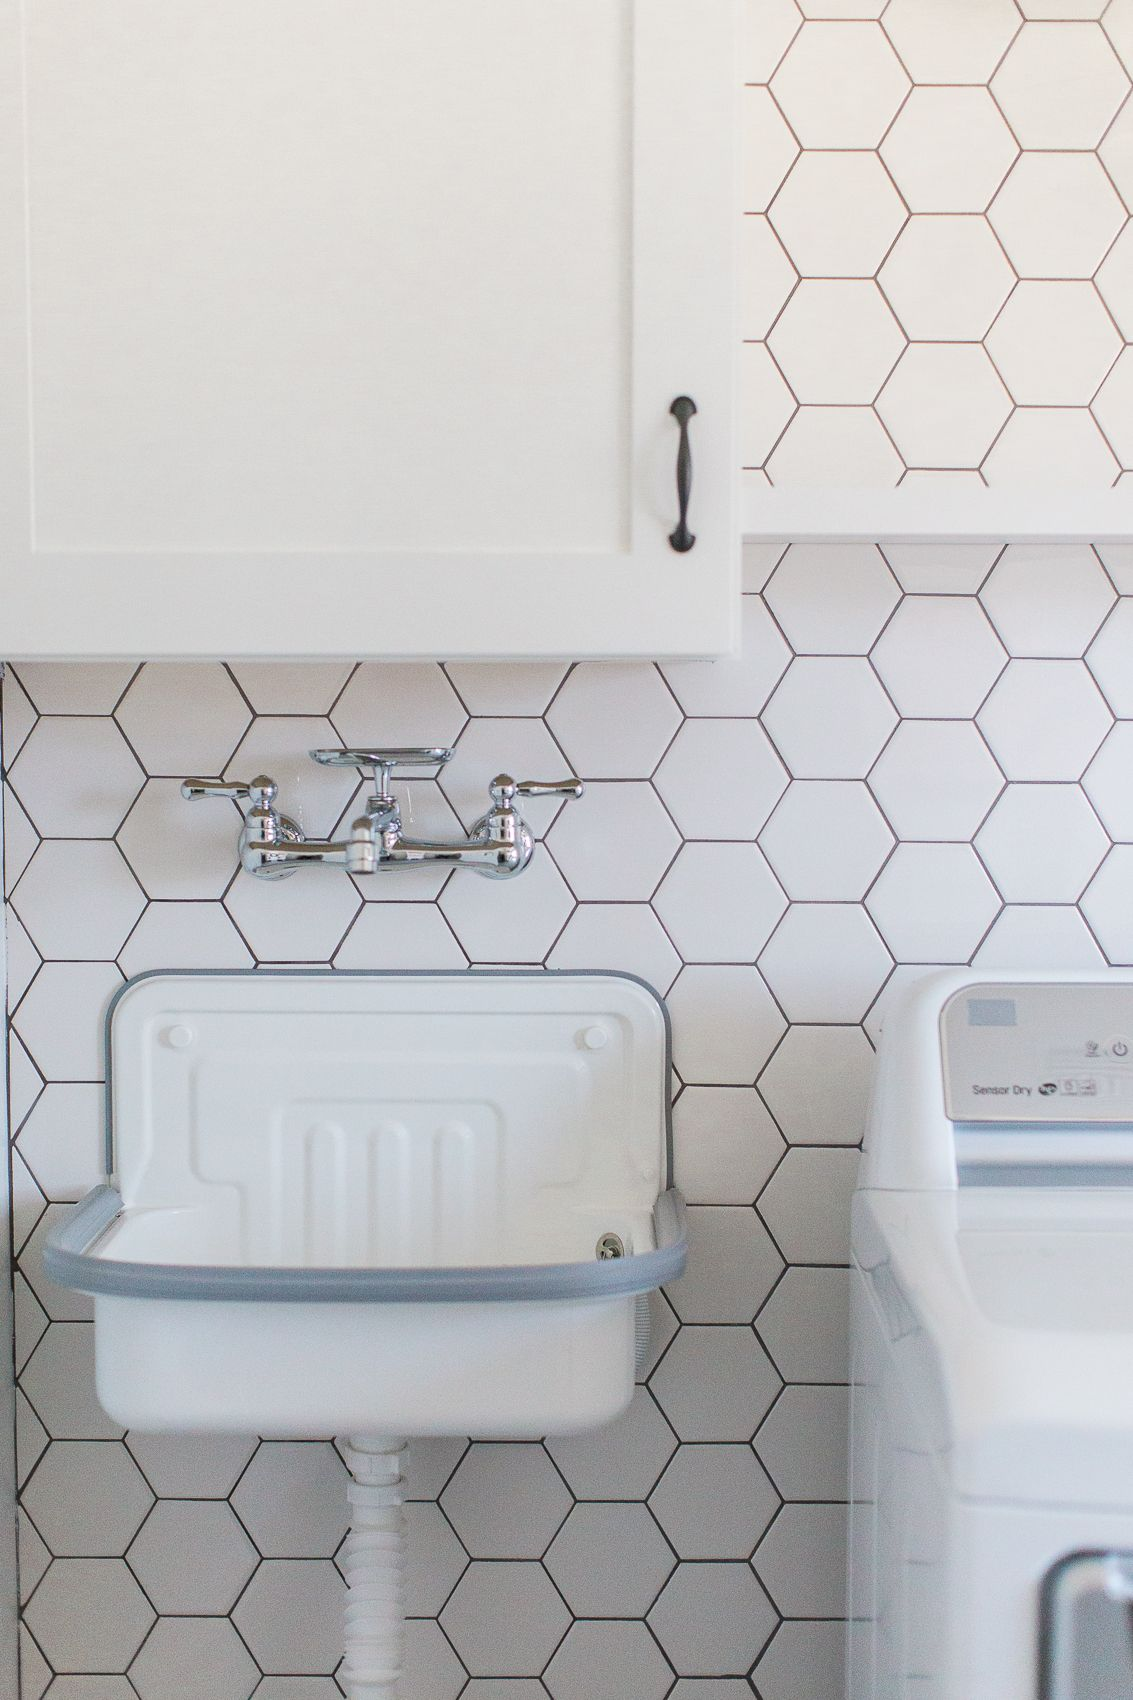 Wall Mounted Laundry Sink And Faucet With Hexagon Tile Accent